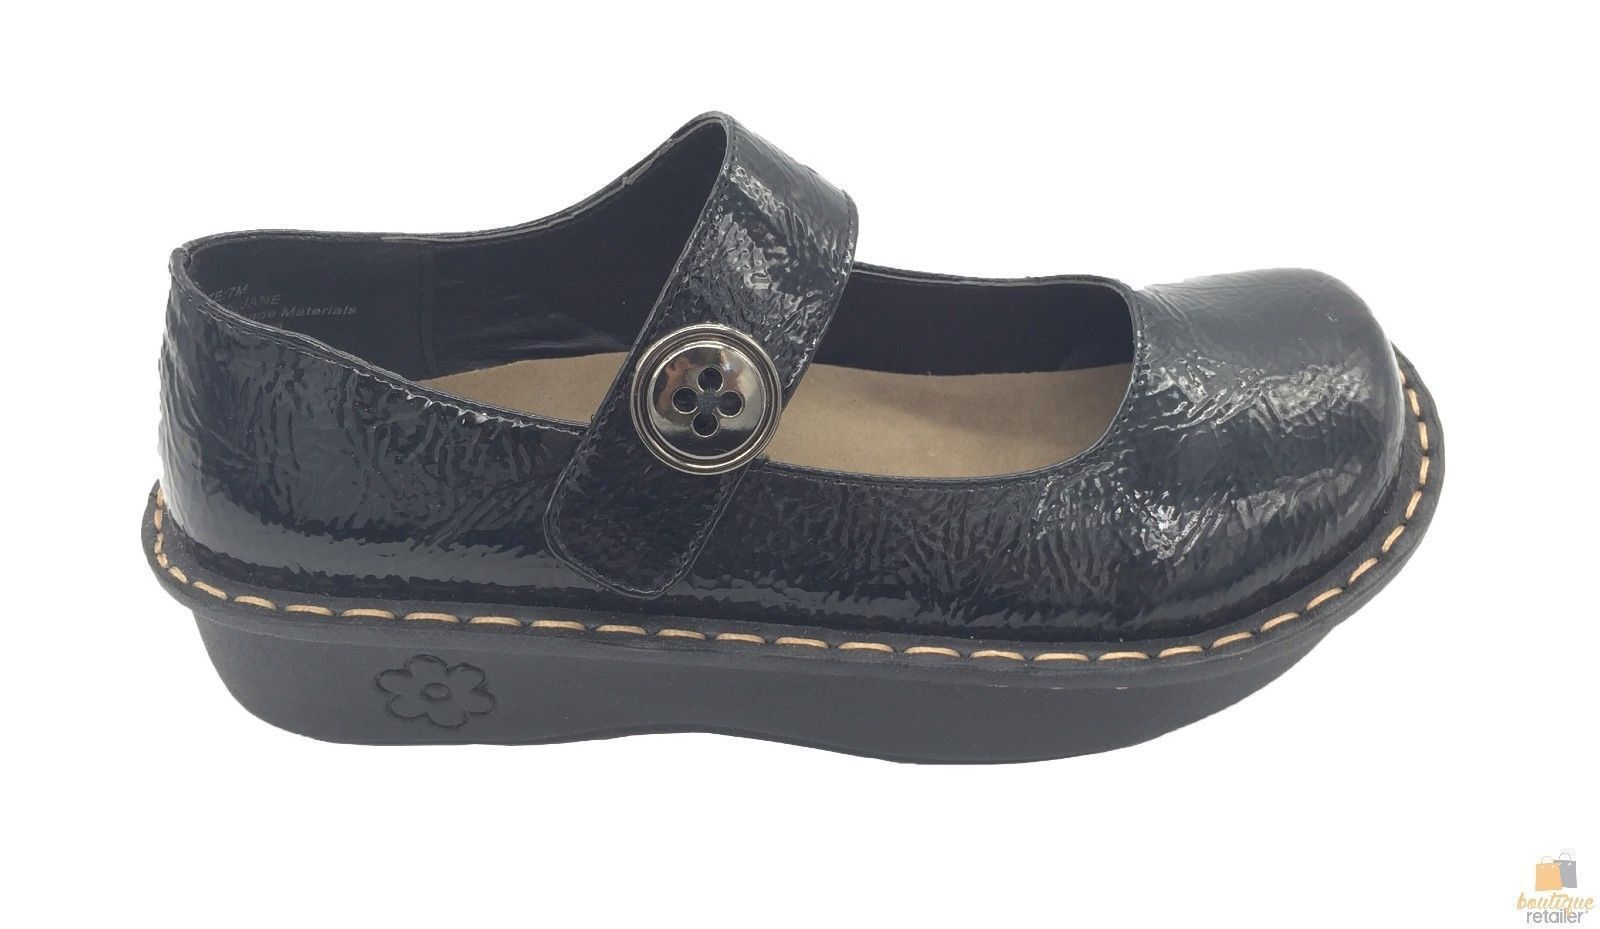 SAVVY-Jane-Nursing-Shoes-Slip-On-Womens-Work-Working-Hospitality-Mary-Jane-Clog thumbnail 24